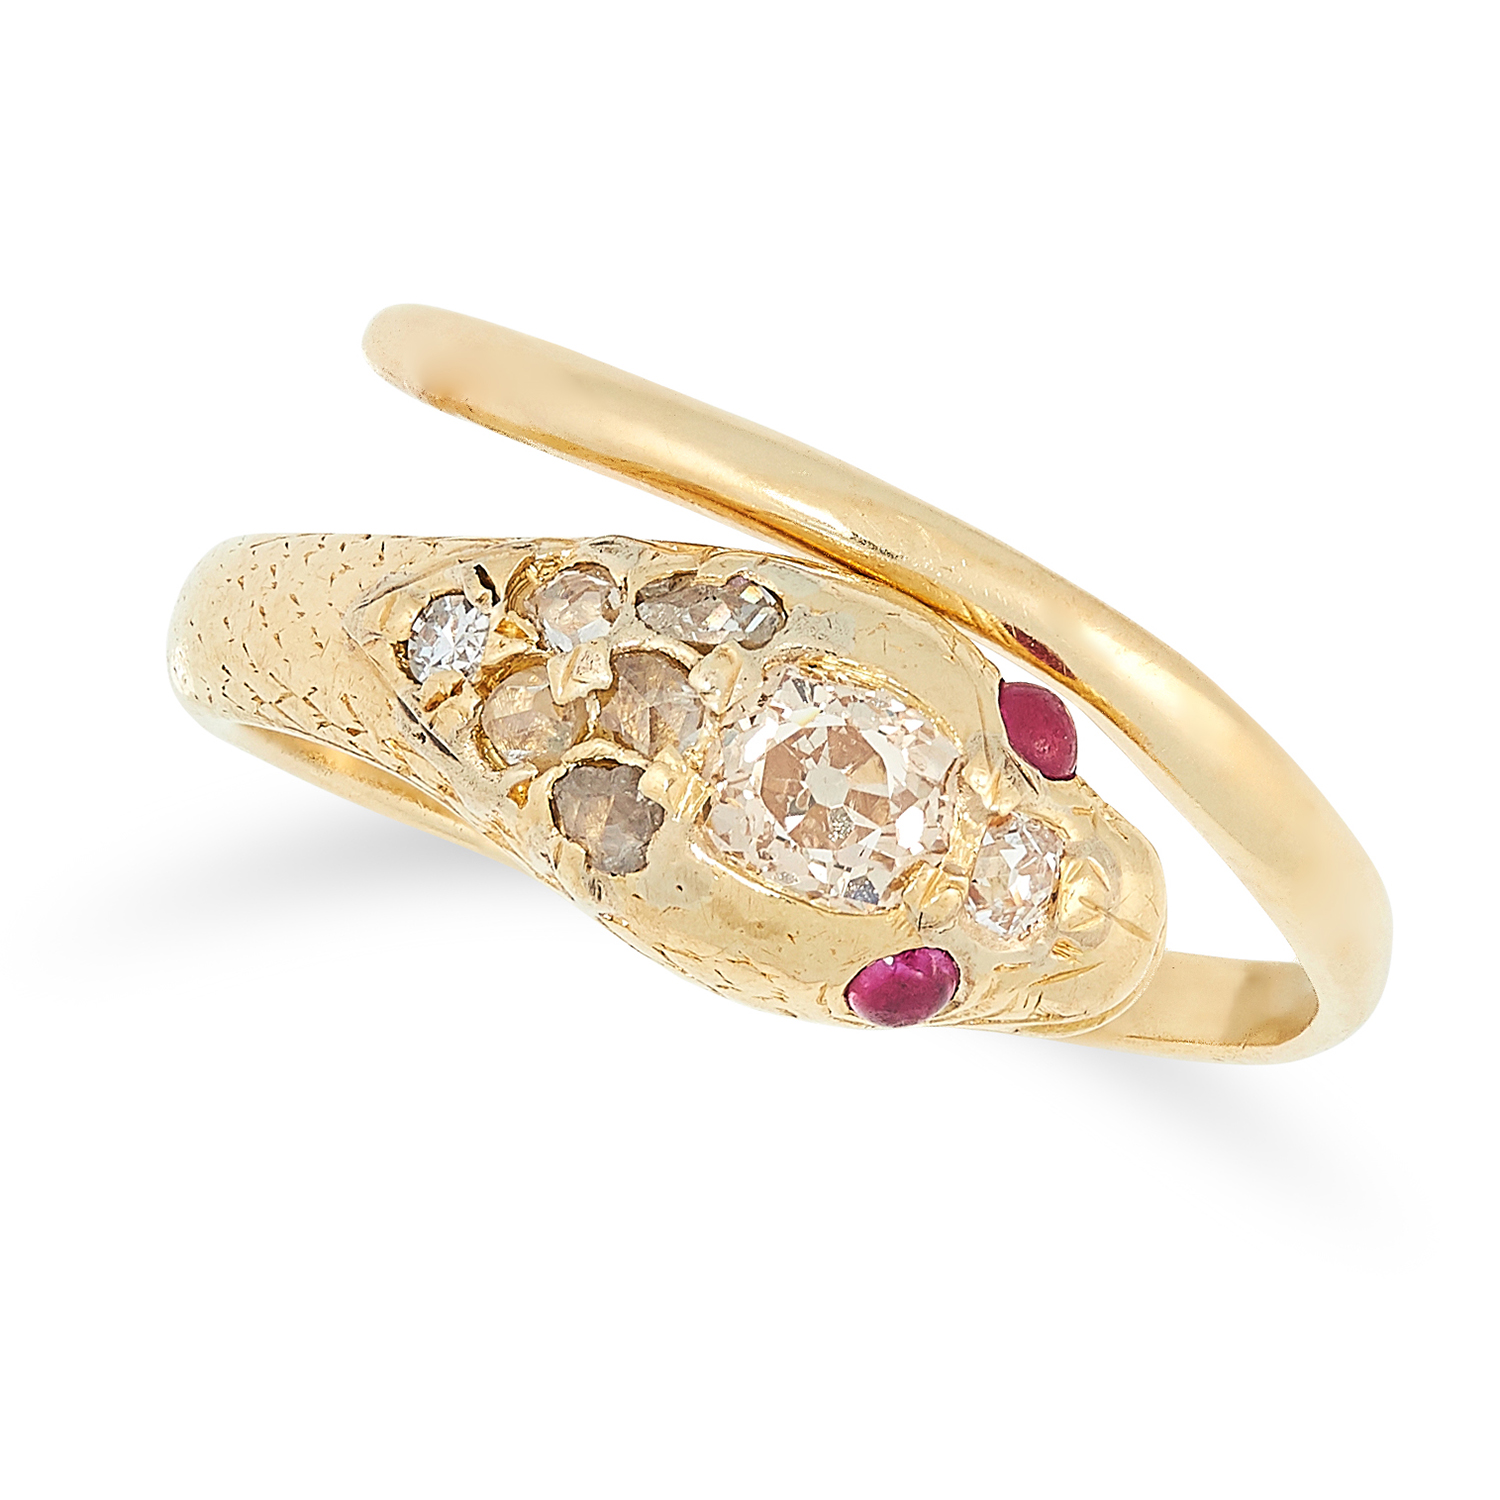 Los 36 - AN ANTIQUE RUBY AND DIAMOND SNAKE RING set with old cut diamonds and rubies, size O / 7, 4.1g.